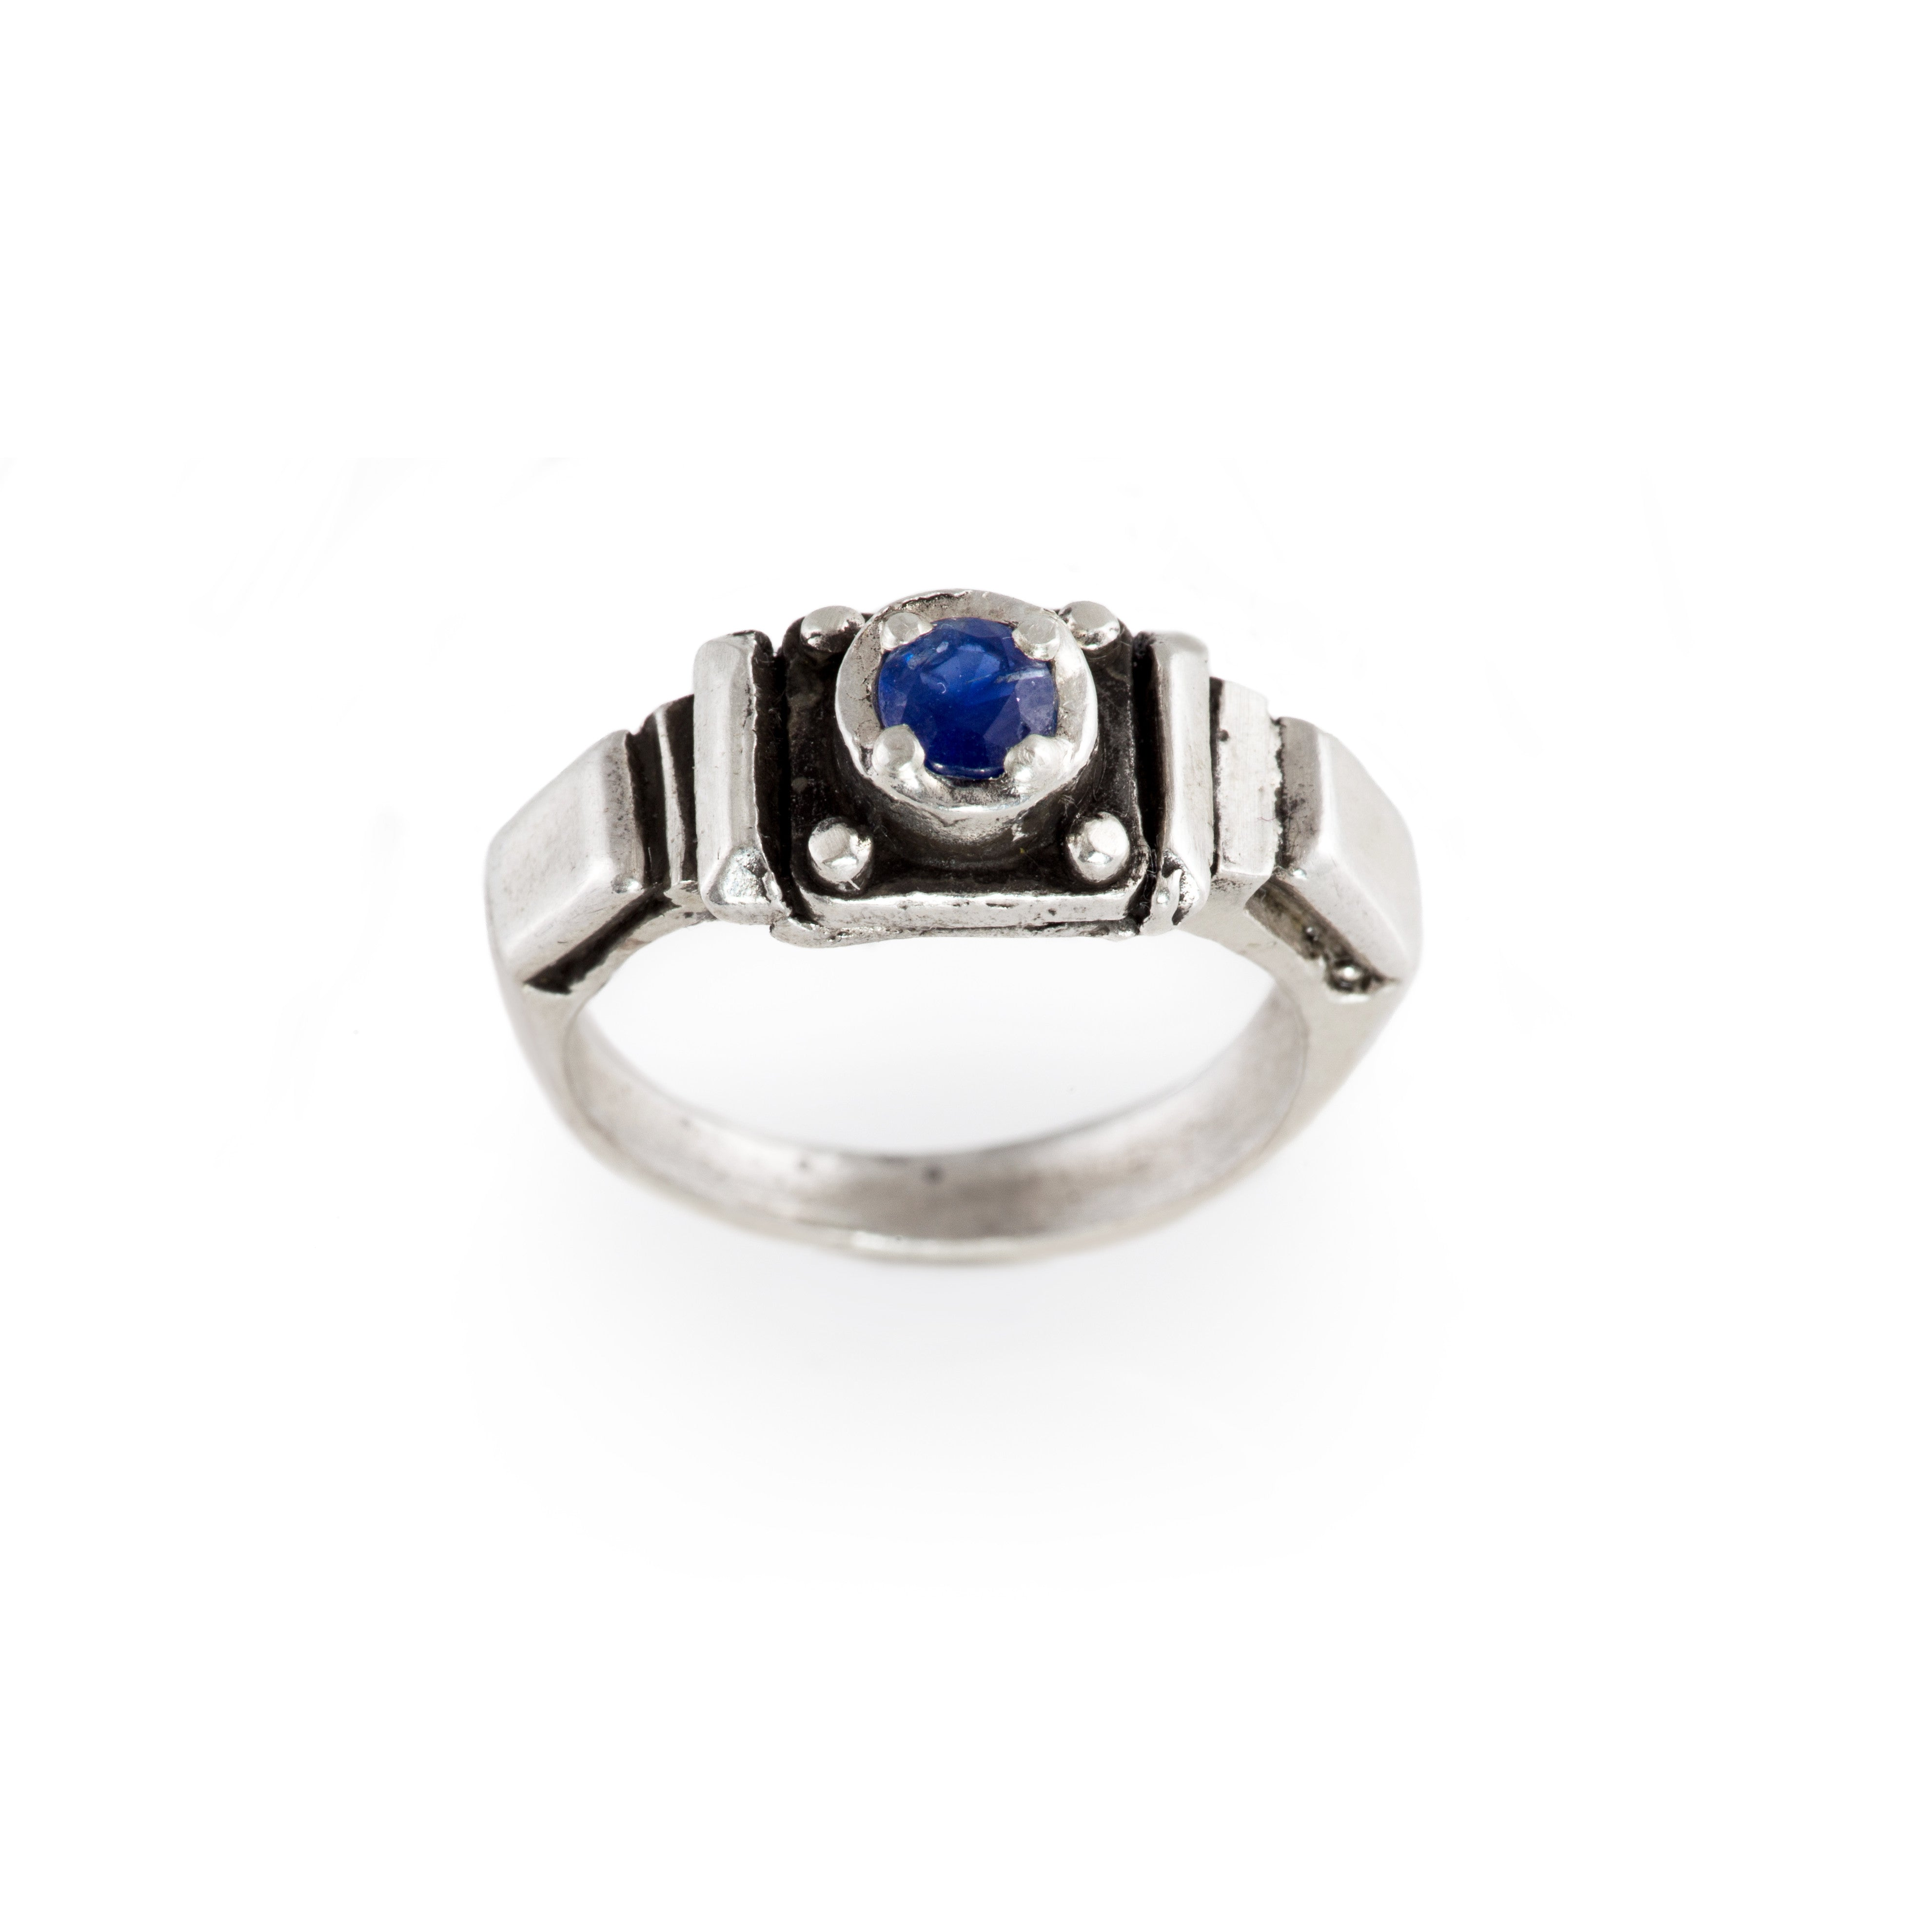 Sapphire Art Deco Band Ring